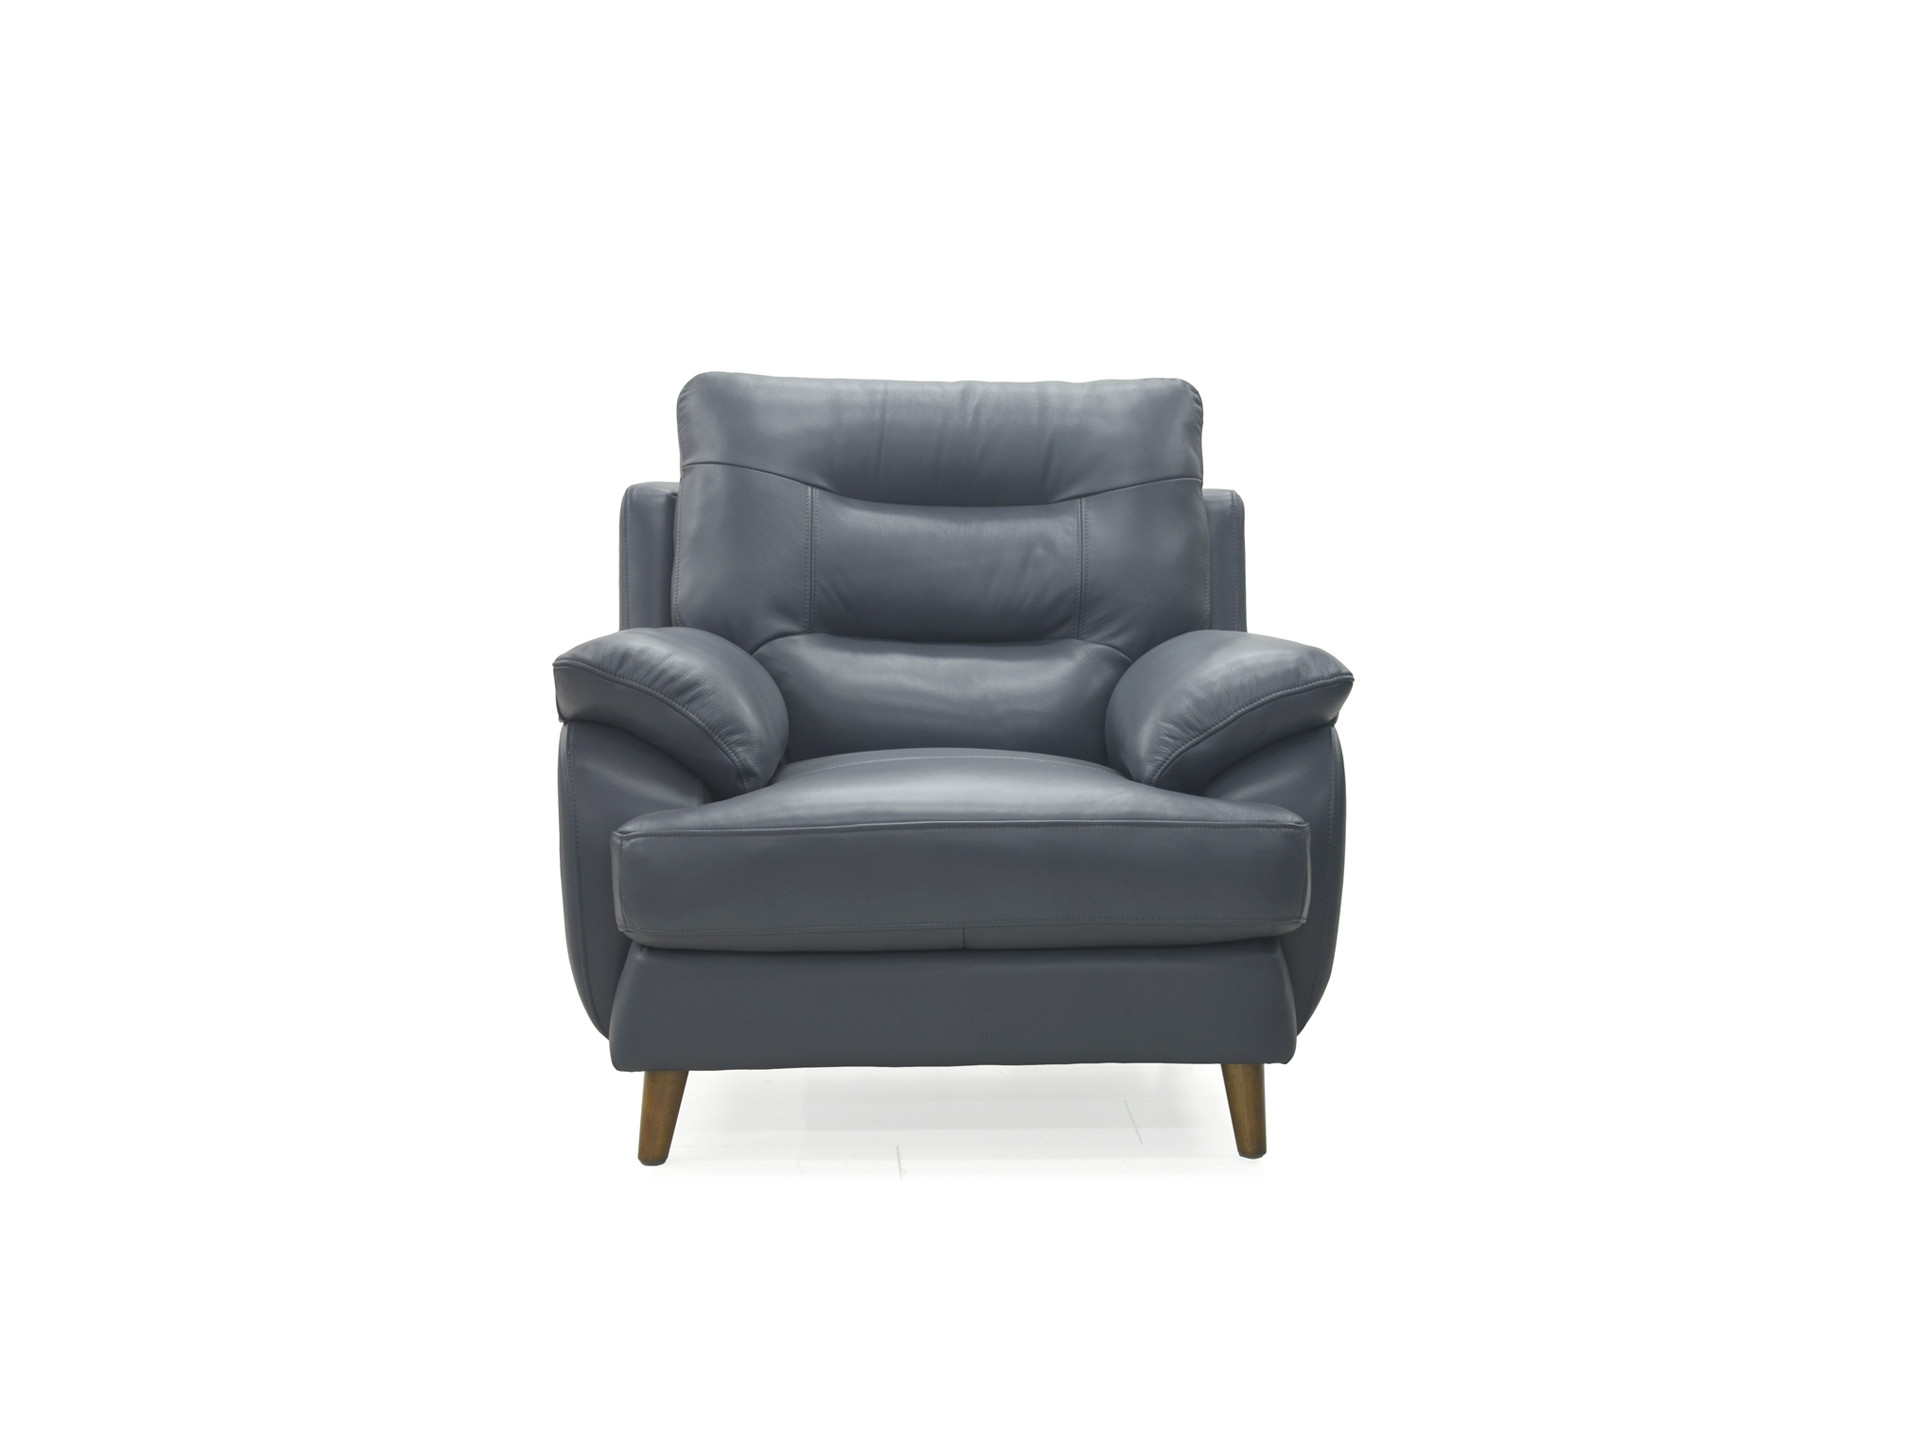 Luxurious Armchairs - La-Z-Boy armchairs are built to be stylish and comfortable, embodying the best of both worlds for the perfect single seat experience.